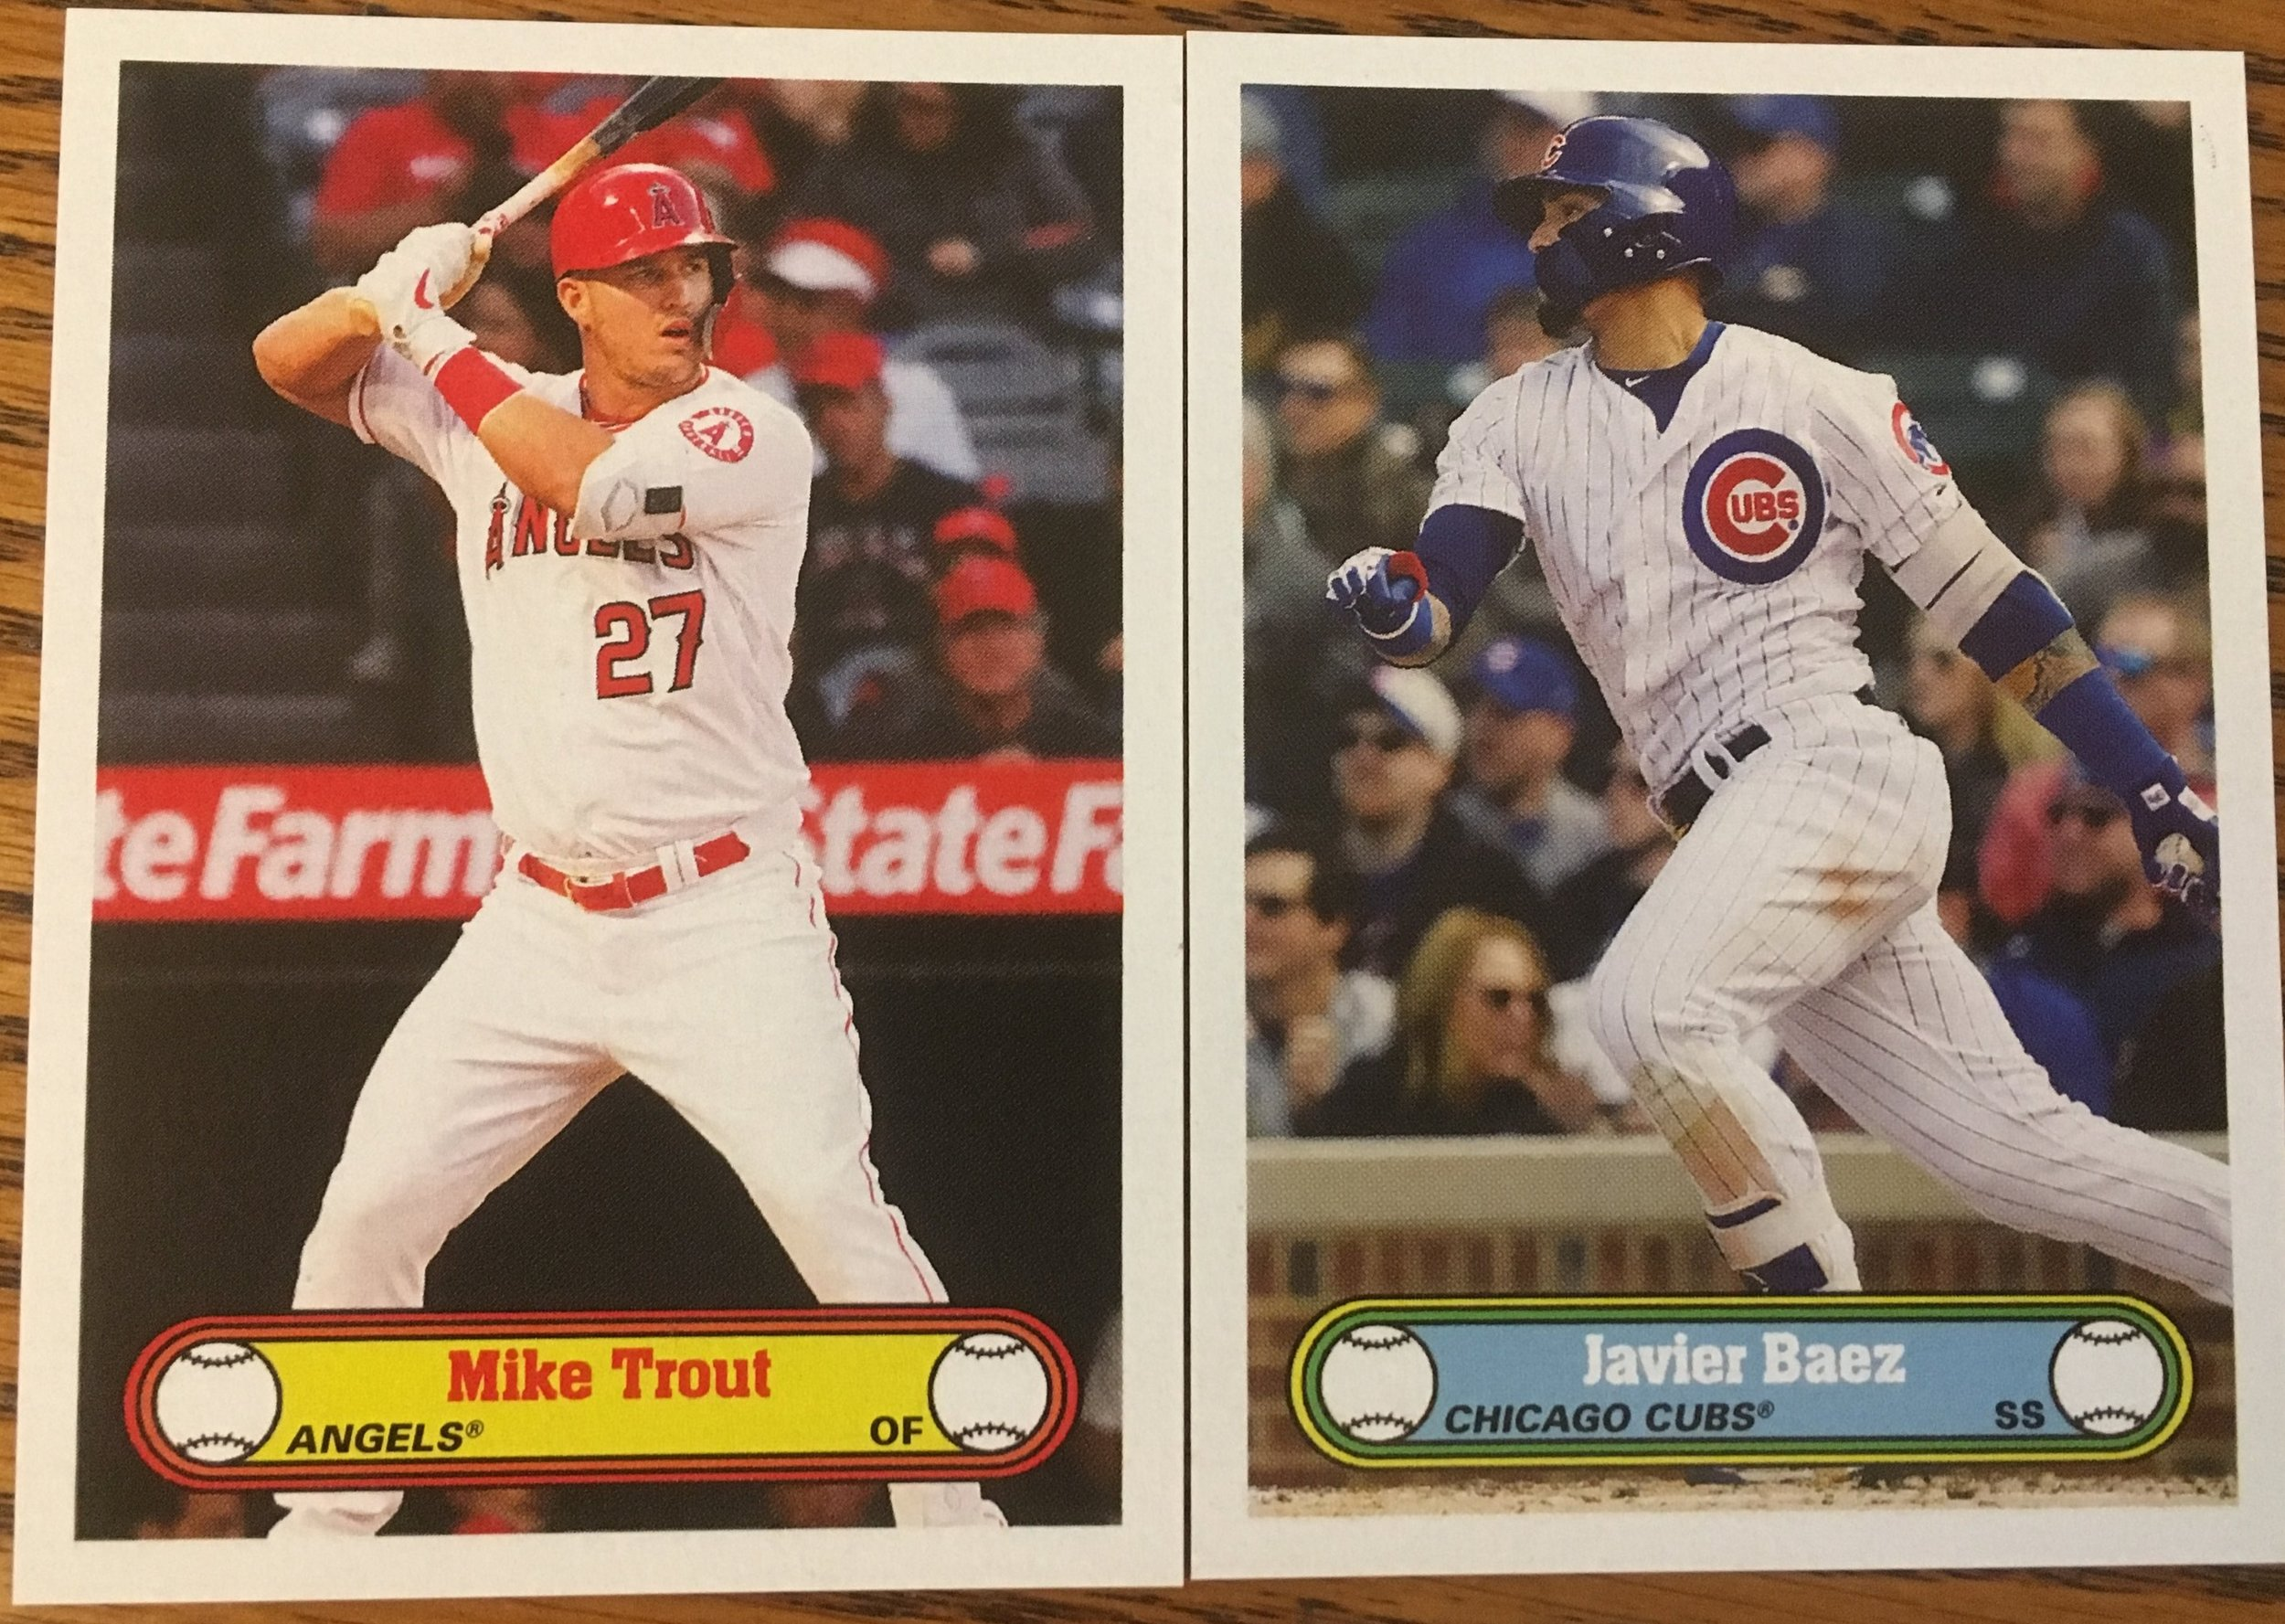 2019 Topps 582 Montgomery Club Set 3 cards of Mike Trout and Javy Baez